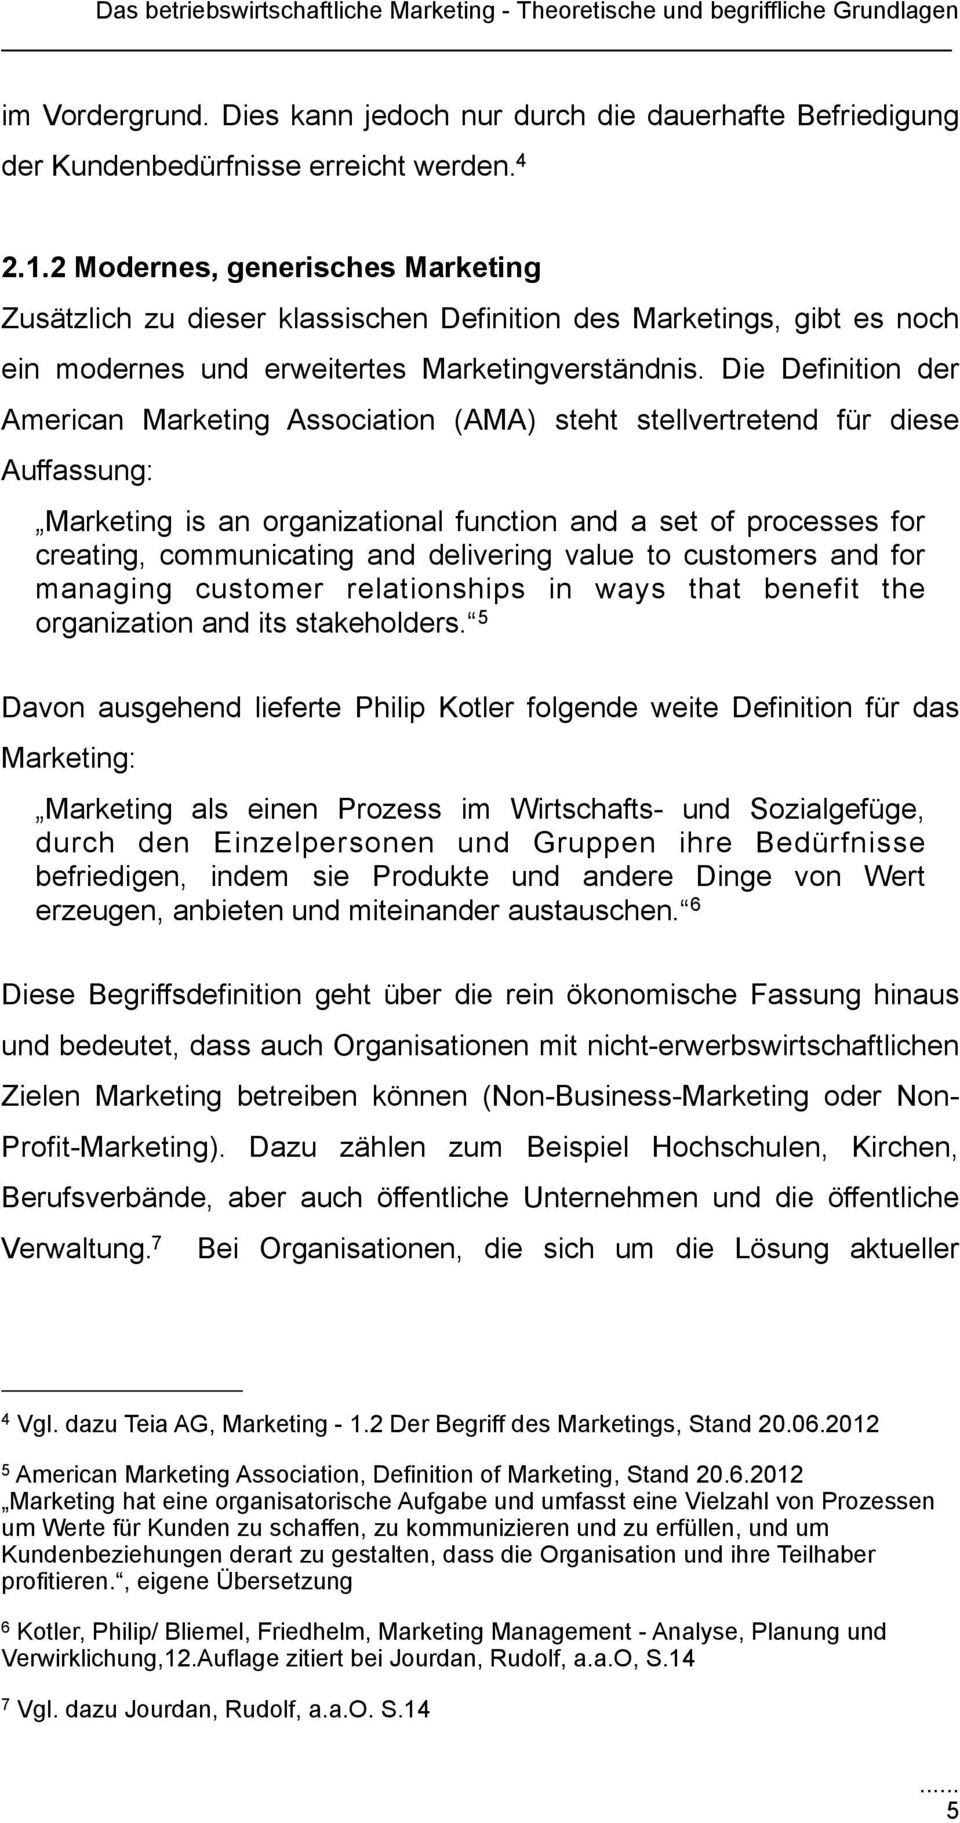 Die Definition der American Marketing Association (AMA) steht stellvertretend für diese Auffassung: Marketing is an organizational function and a set of processes for creating, communicating and